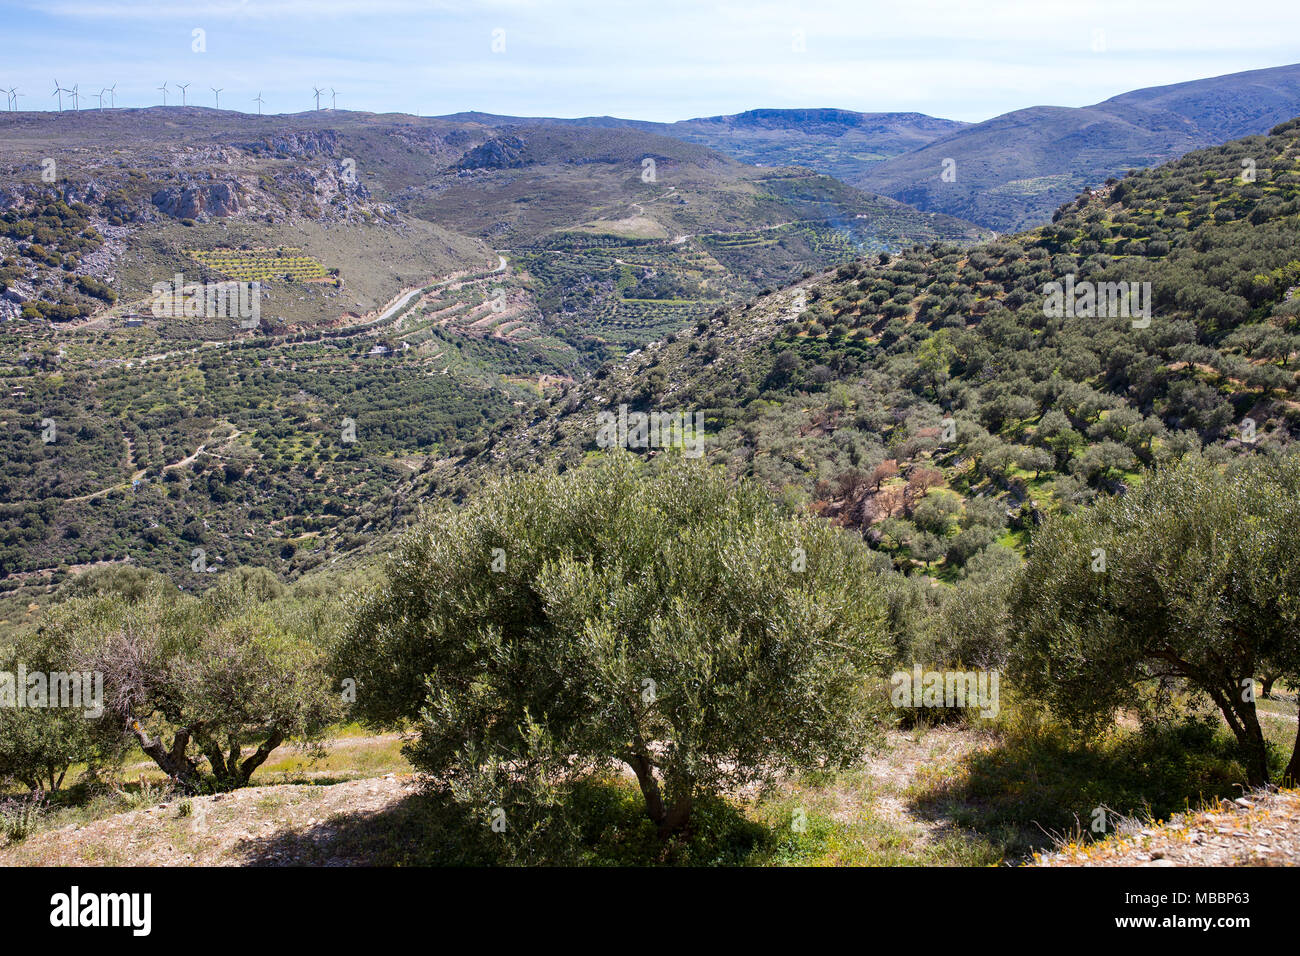 Crete landscape, green hills, mountains, blue sky, olive trees and brush. Scenic, panoramic, large brochure photo. - Stock Image